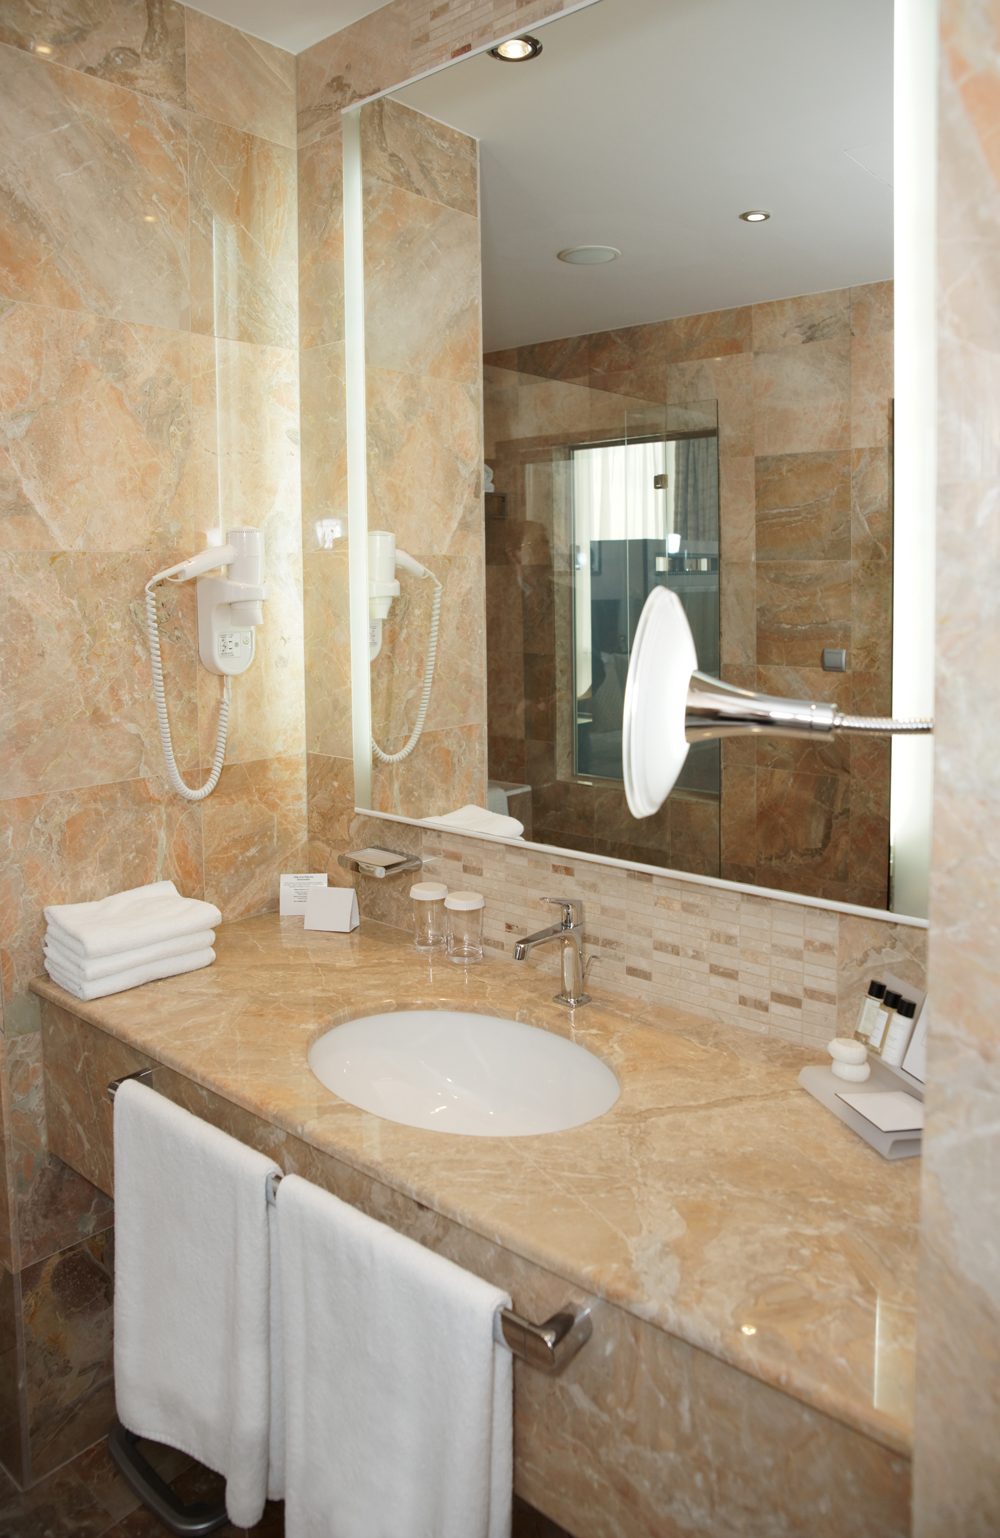 Hotel-Bathroom_W.jpg